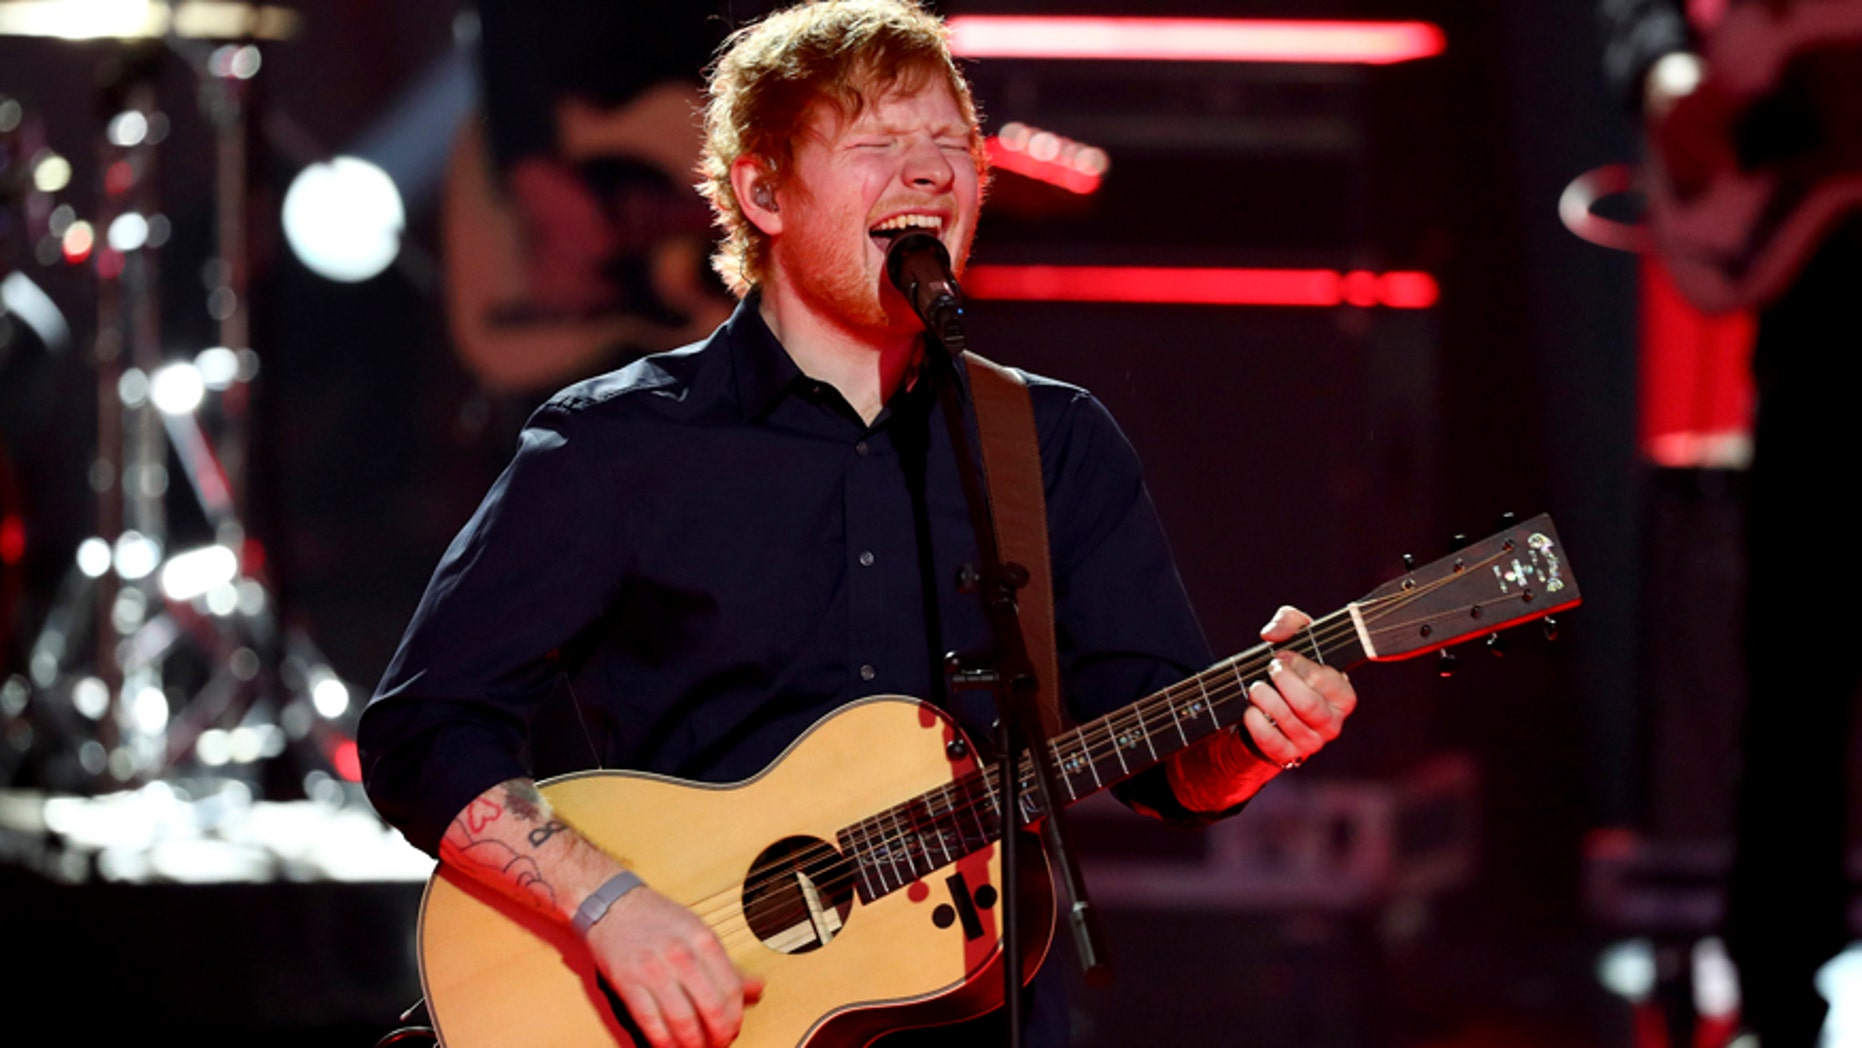 Ed Sheeran faces another copyright lawsuit as a co-writer on McGraw and Hill's new single.